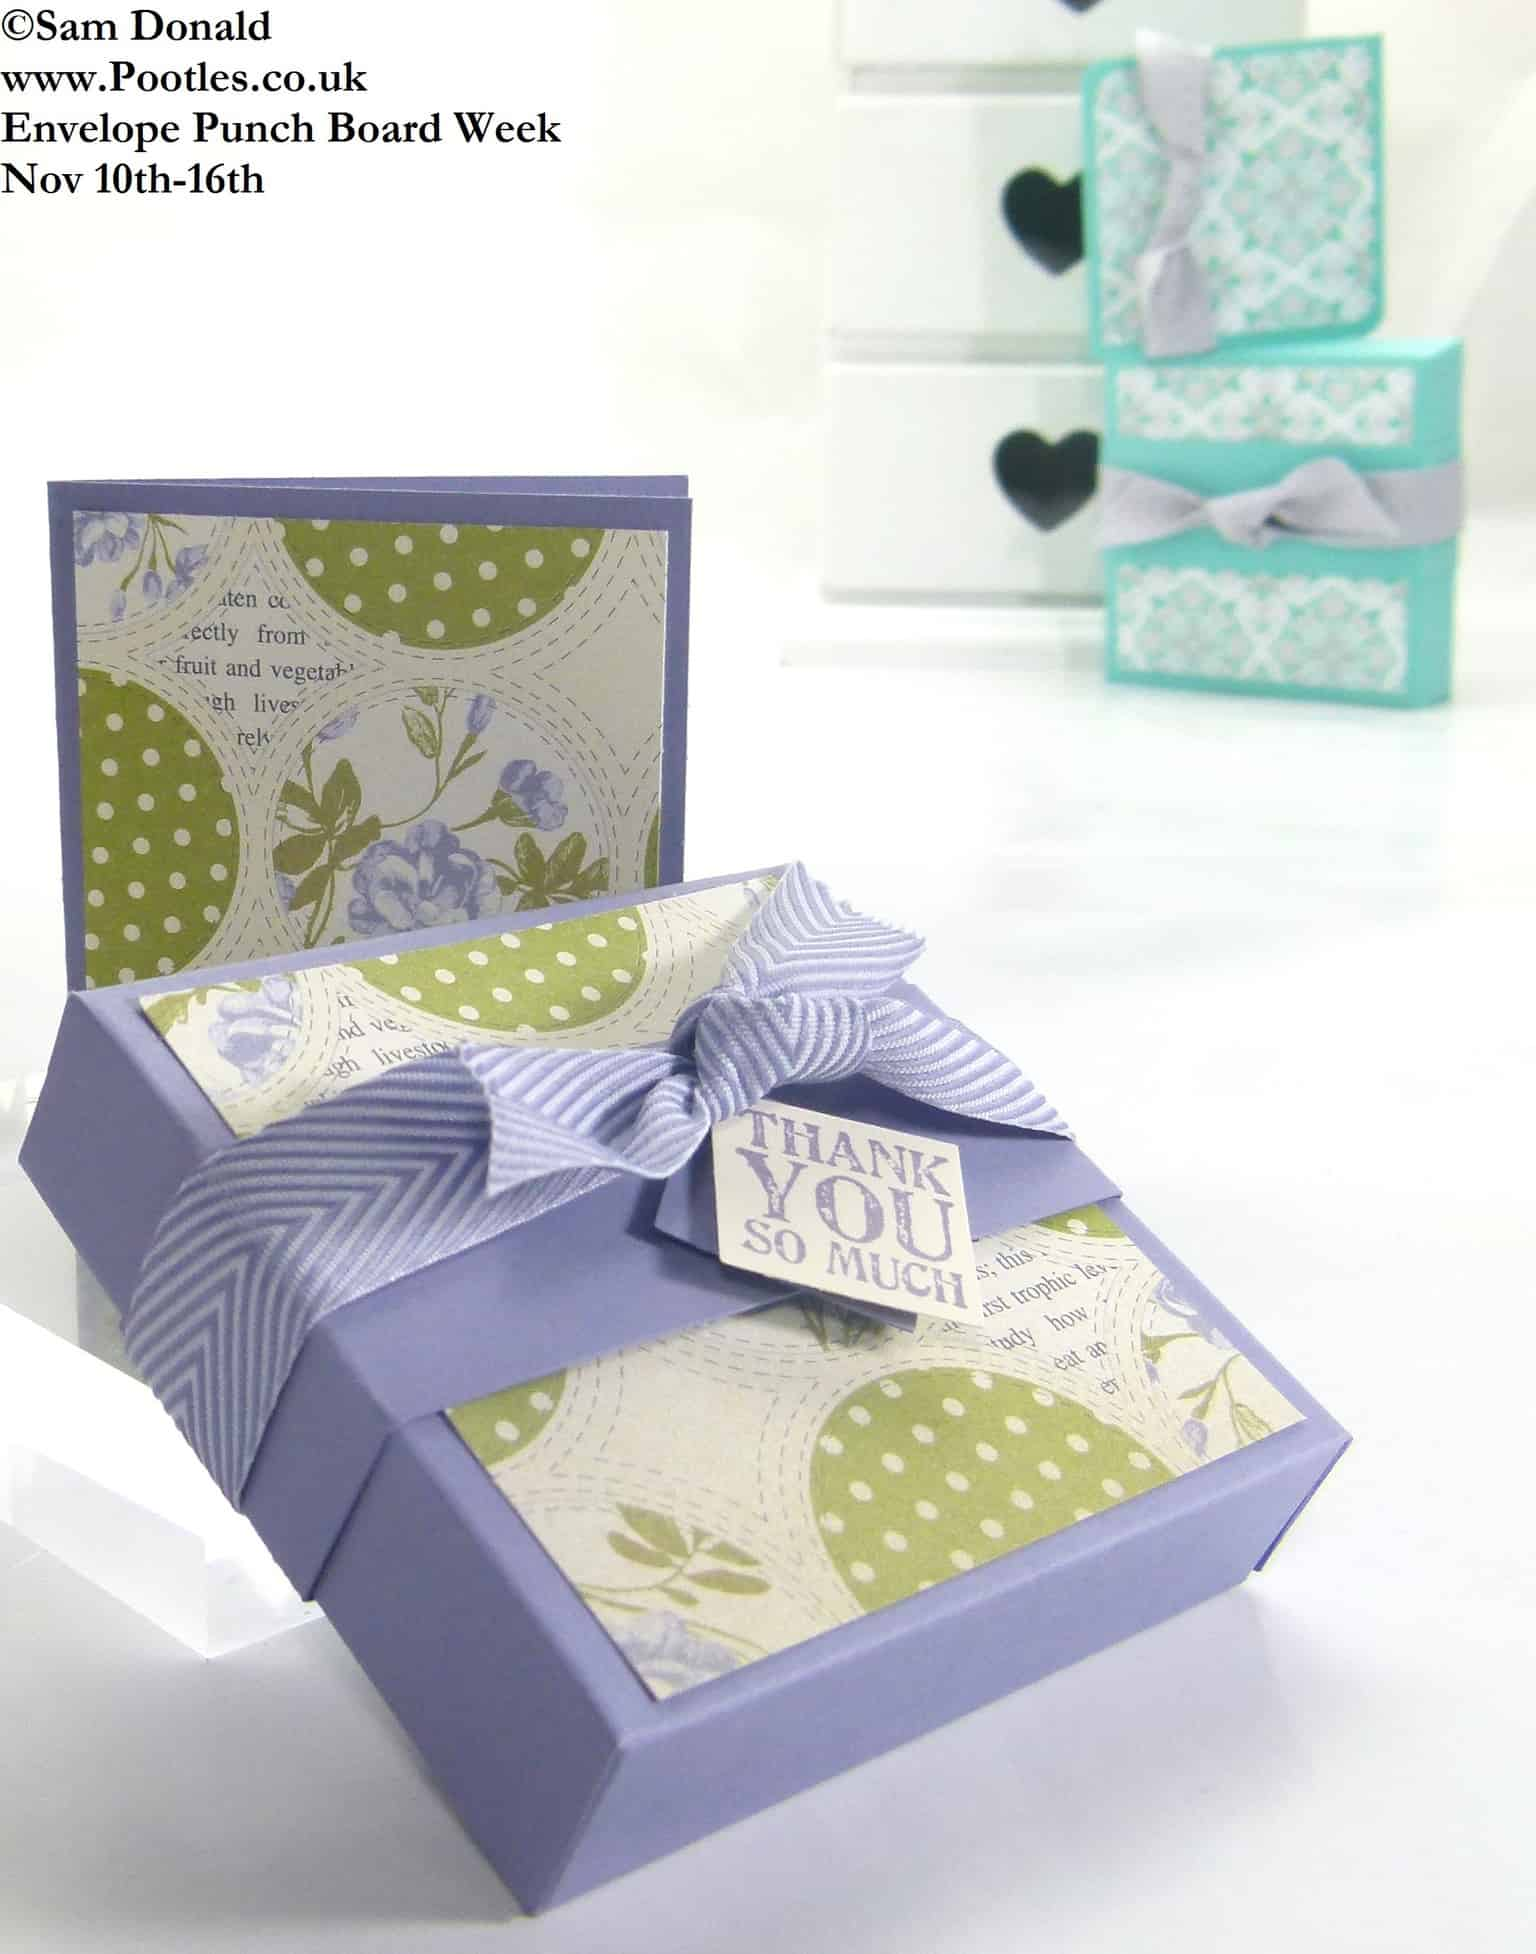 POOTLES Stampin Up ENVELOPE PUNCH BOARD WEEK The Soap Gift Box 3 (1)